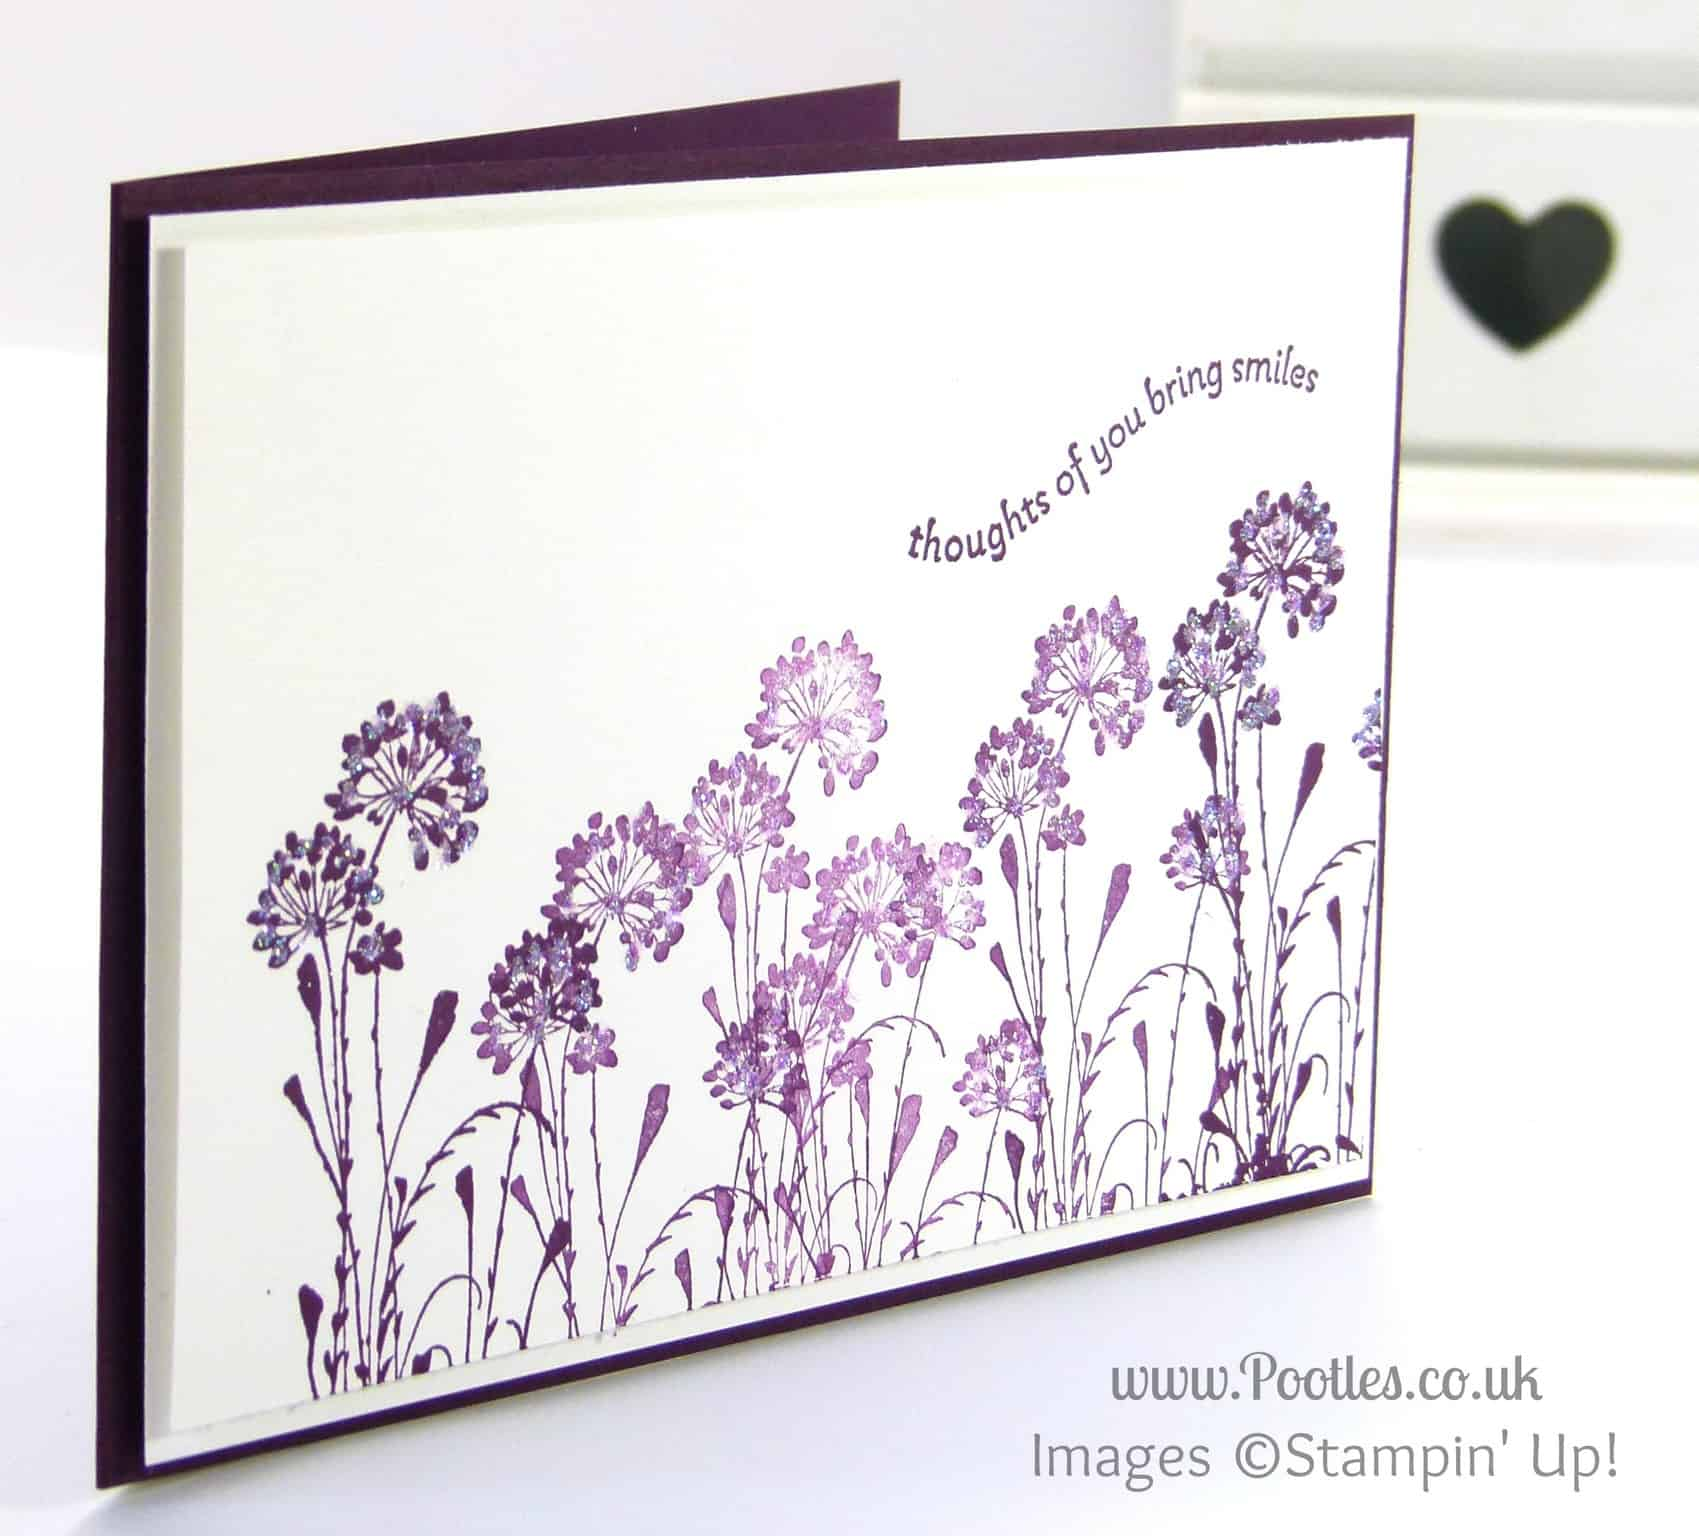 Stampin' Up! UK Demonstrator Pootles - Serene Sillhouettes Inspired Card